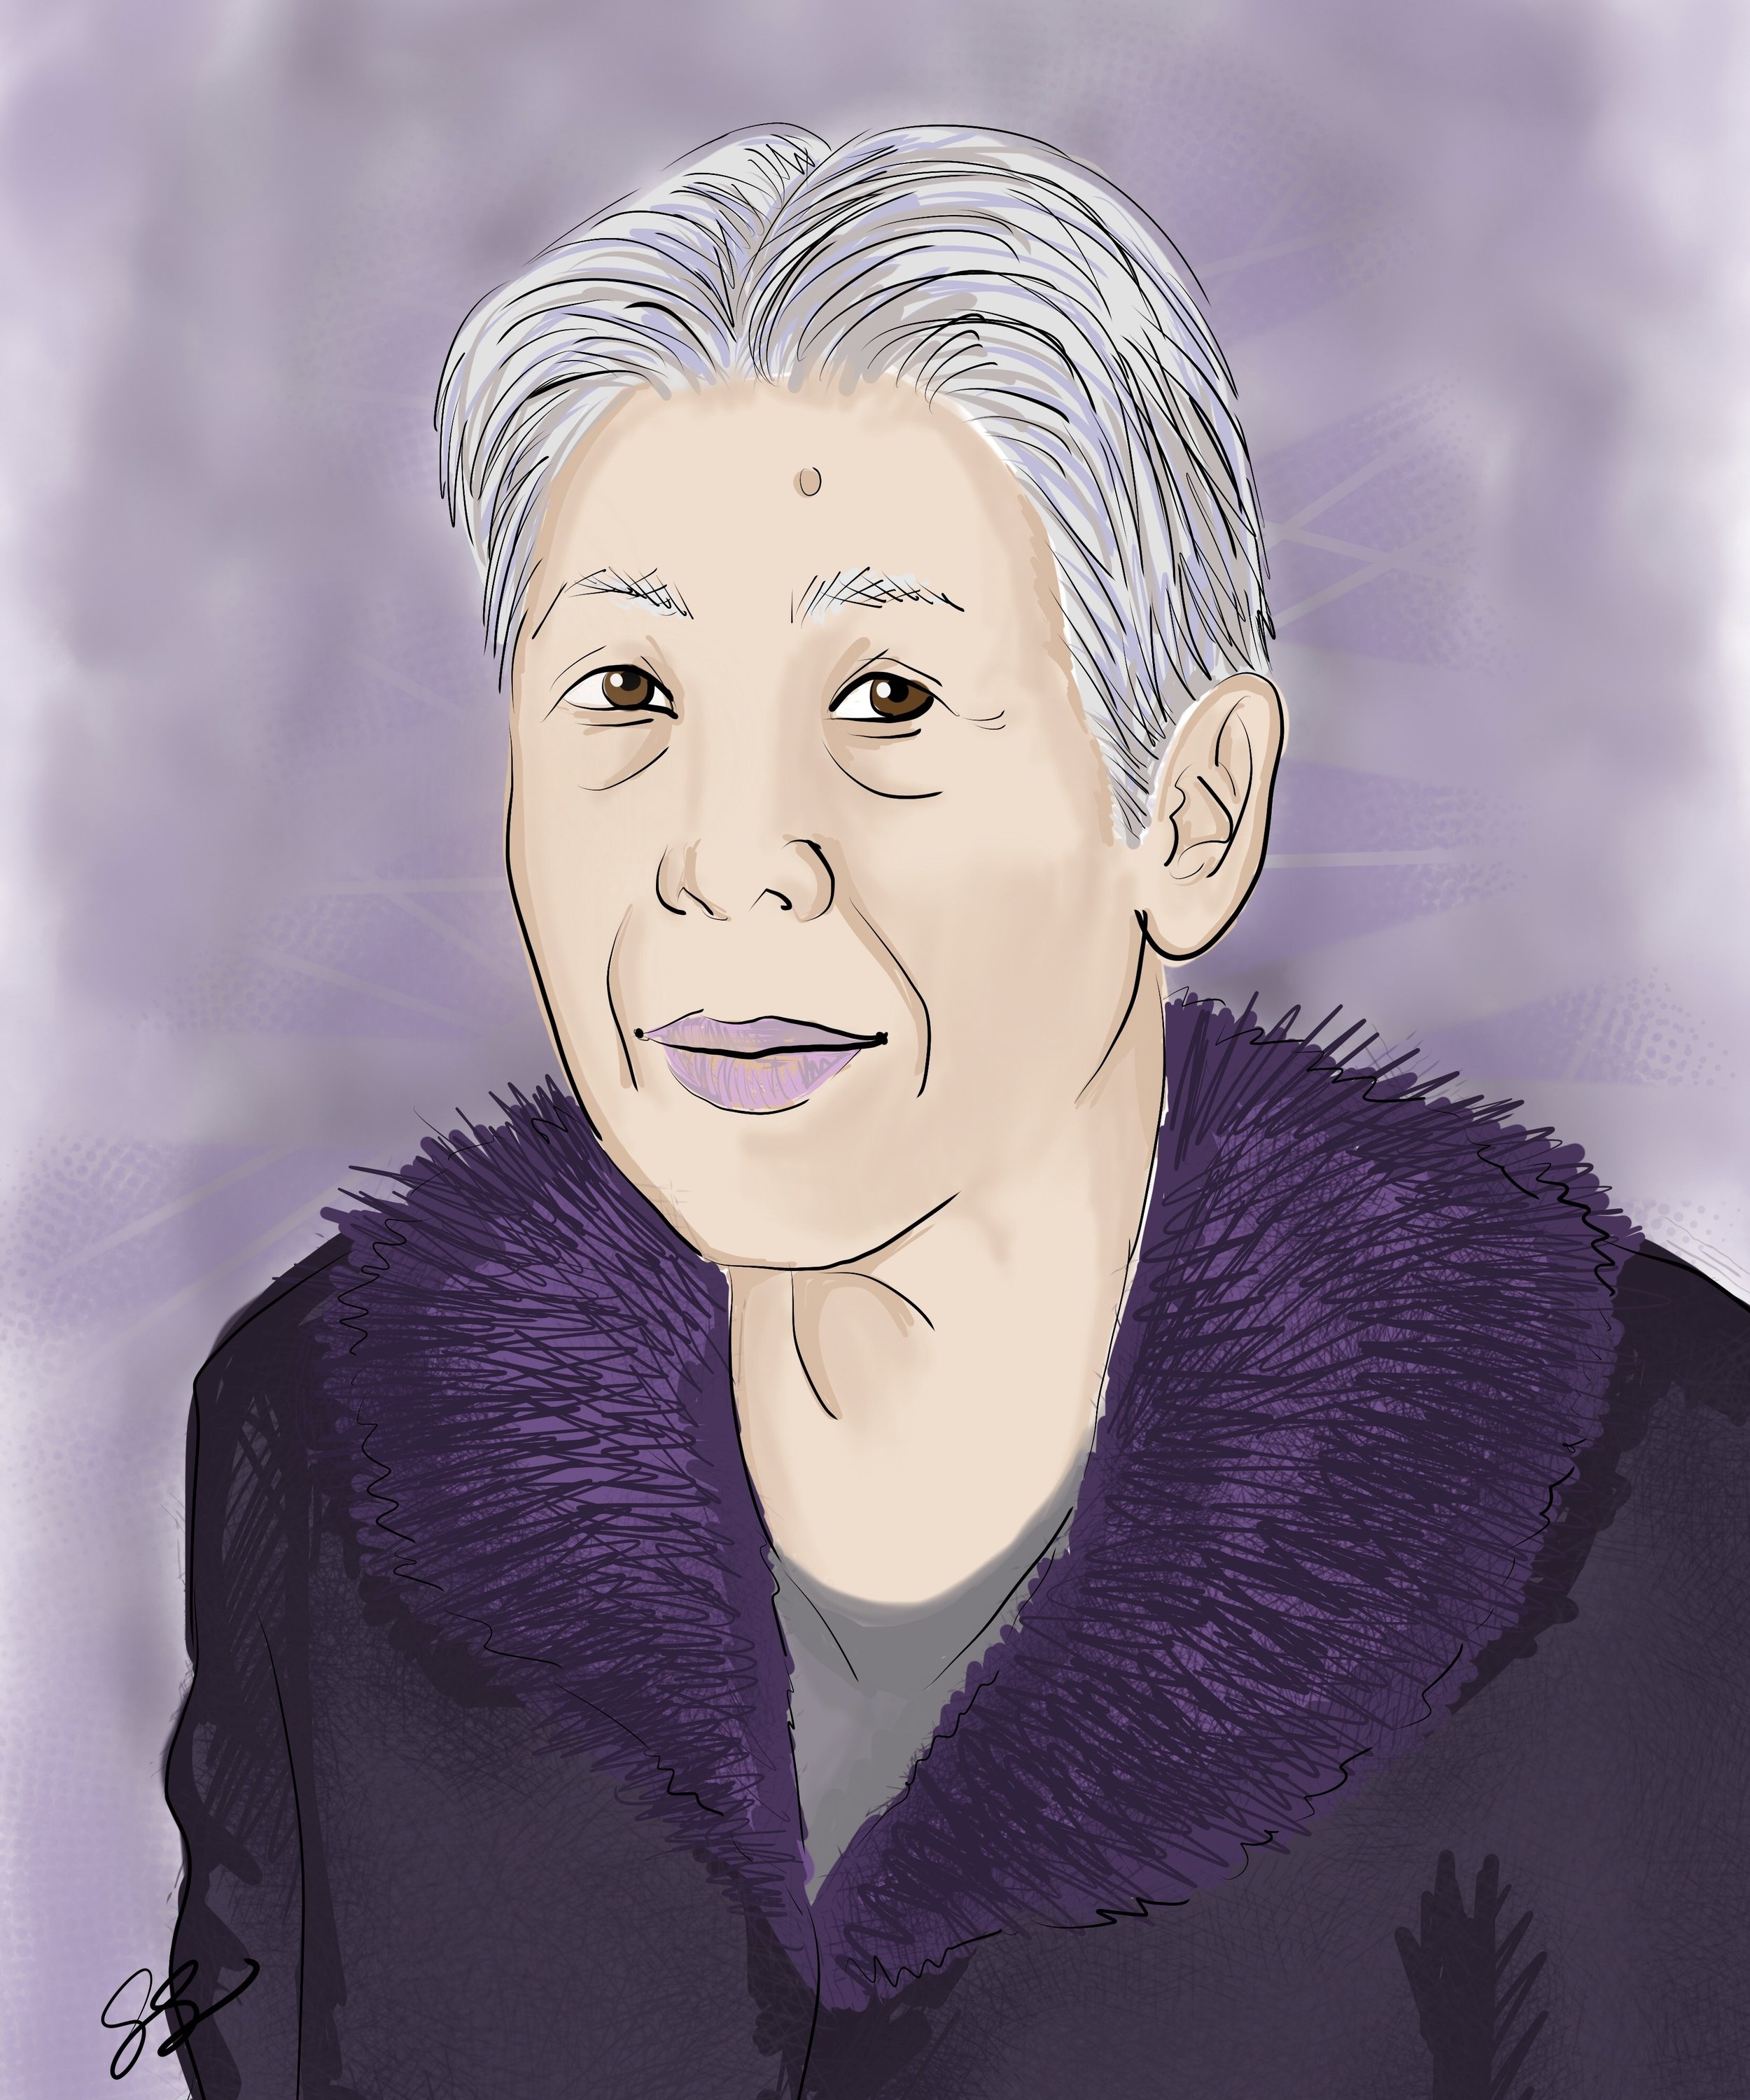 Susanna ChauHong Kong, China - The picture is perfect! You capture her expressions very well. This is the last tribute we can have for her to say thank you for everything she has done for us.On a commemorative portrait of her mother-in-law for a family funeral